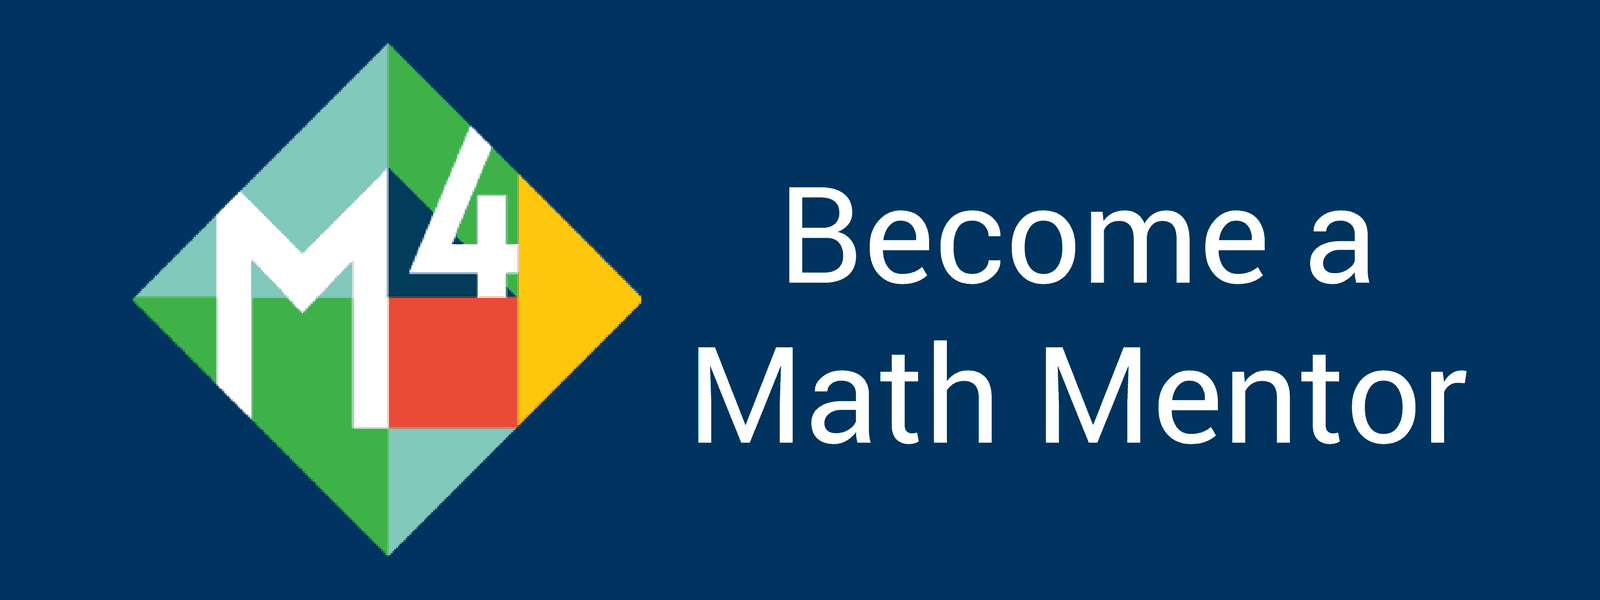 Become a math mentor